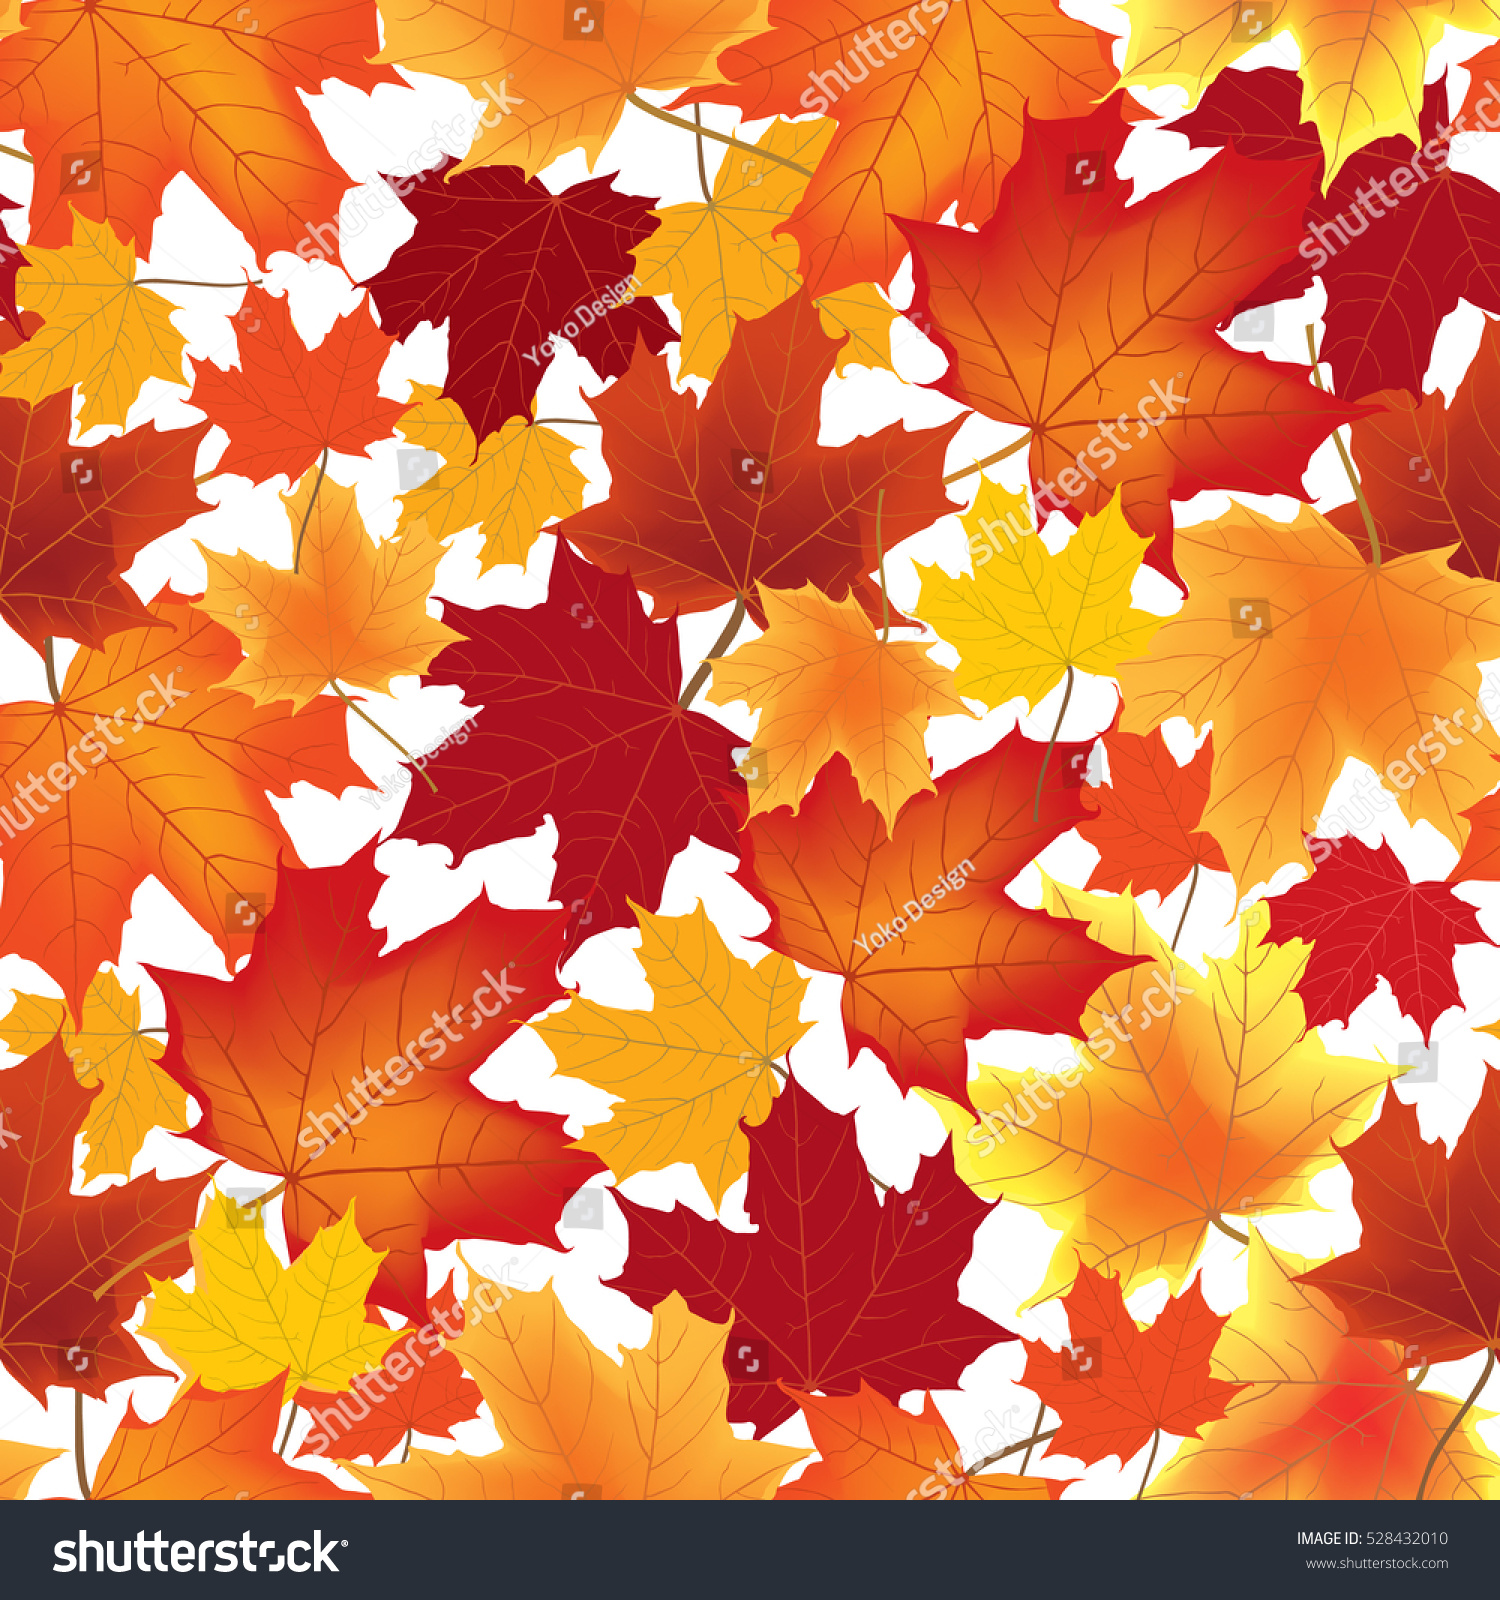 - Fall Leaf Nature Seamless Background Autumn Stock Illustration